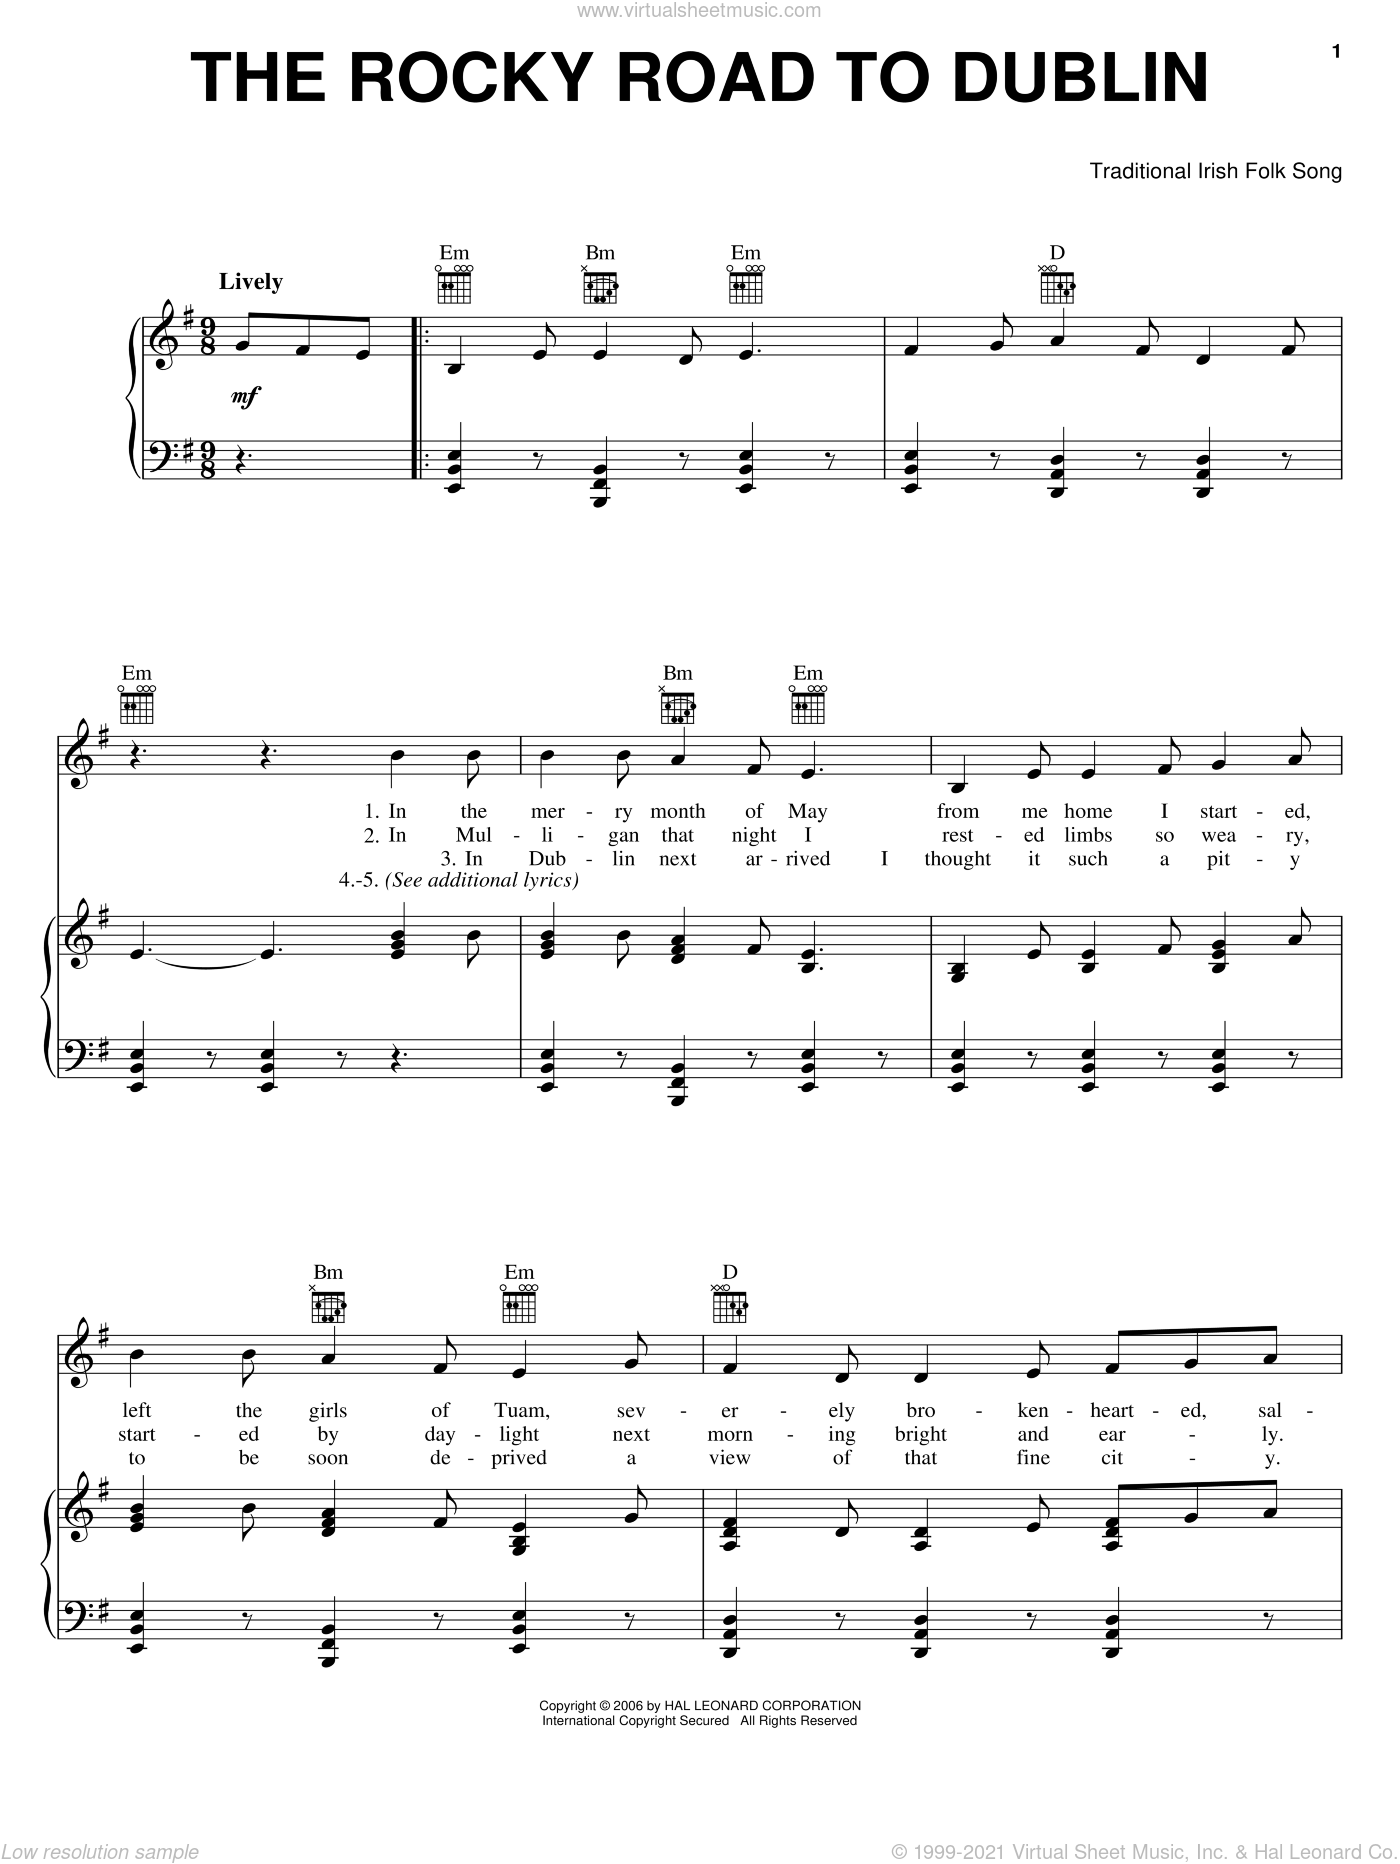 The Rocky Road To Dublin sheet music for voice, piano or guitar. Score Image Preview.